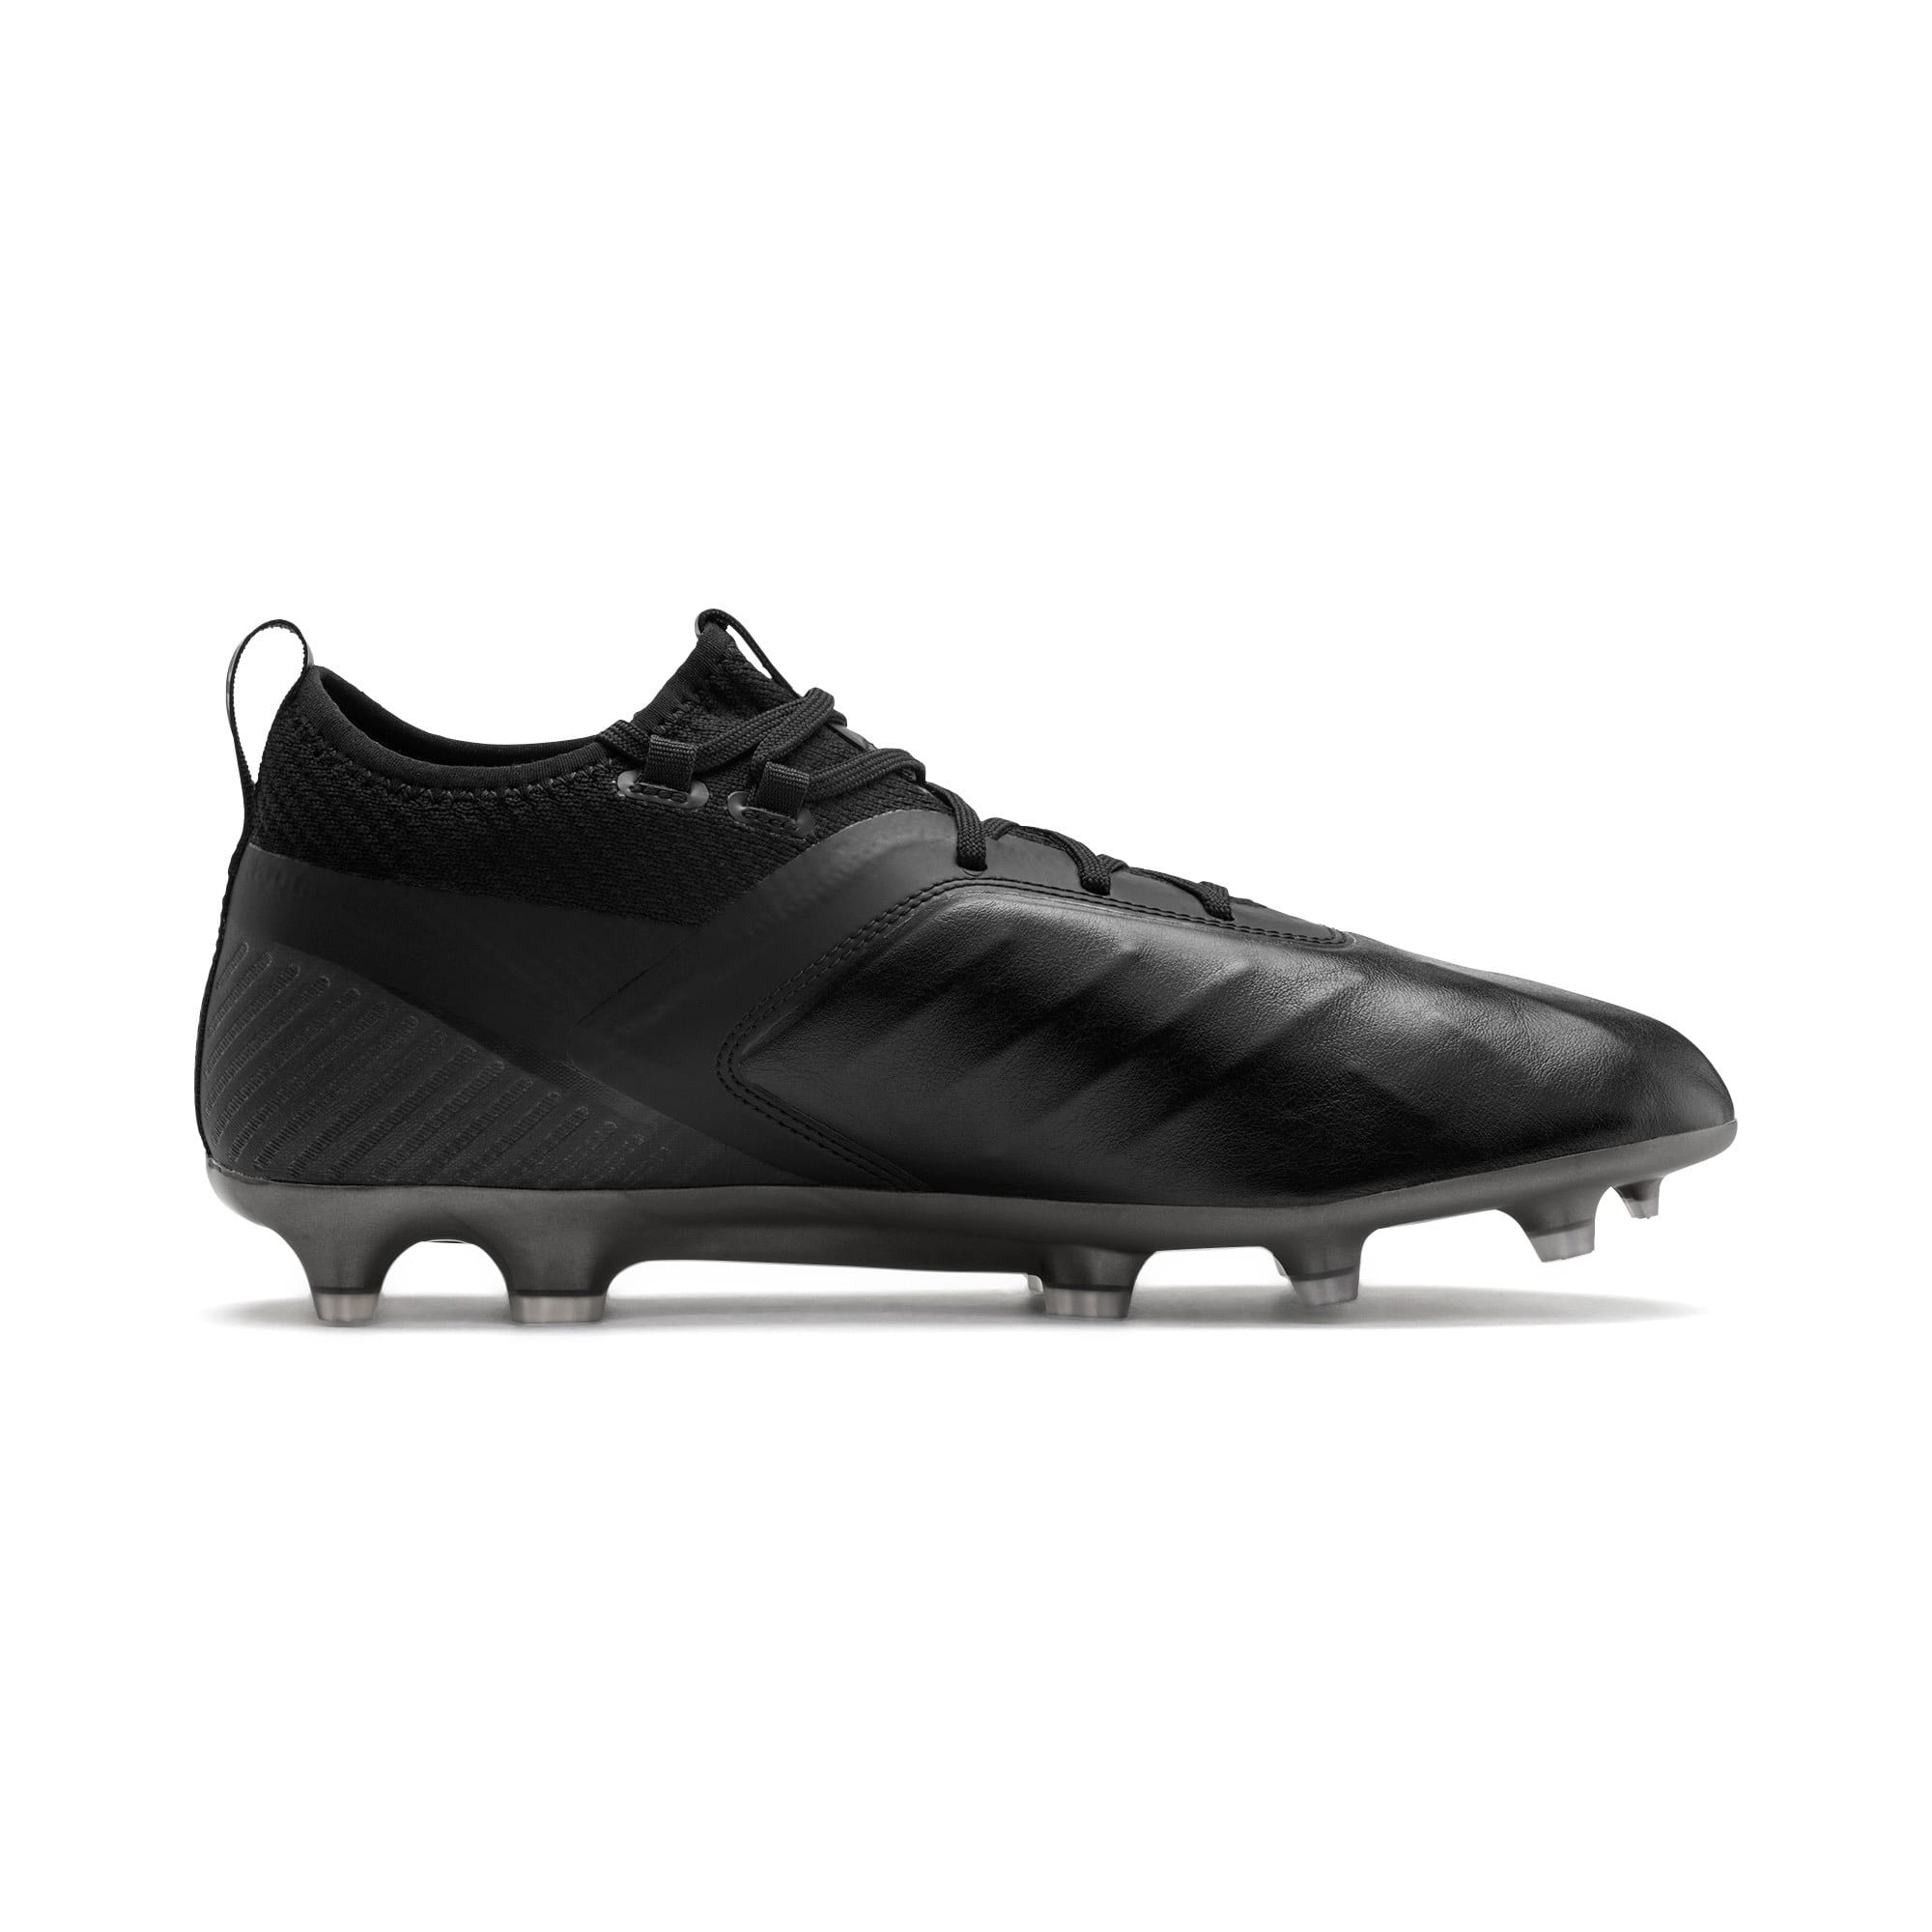 PUMA ONE 5.2 Men's Football Boots, Black-Black-Puma Aged Silver, large